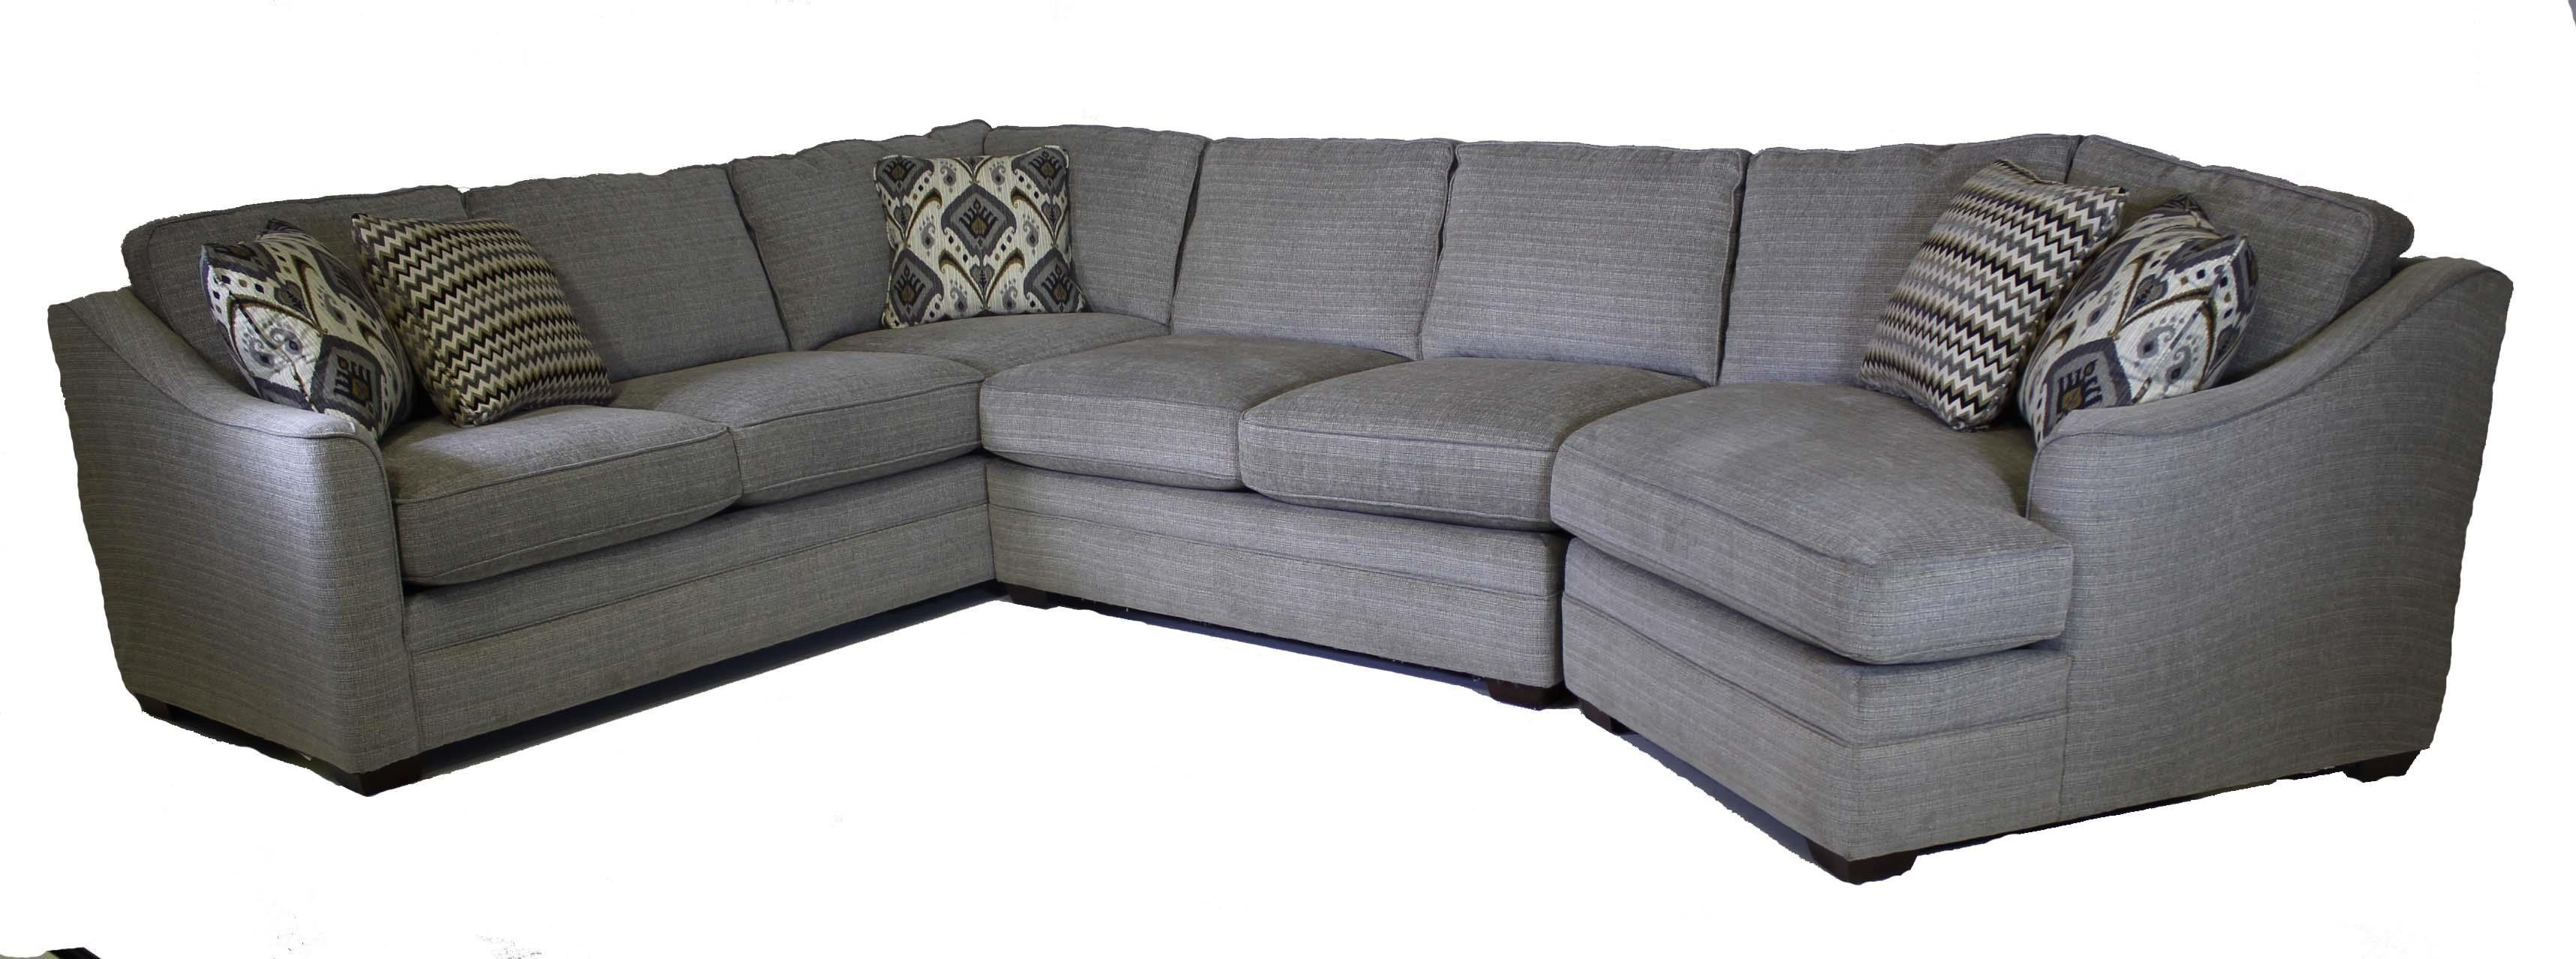 Craftmaster F9 Custom Collection Customizable 3 Piece Sectional Within Craftmaster Sectional (View 2 of 15)